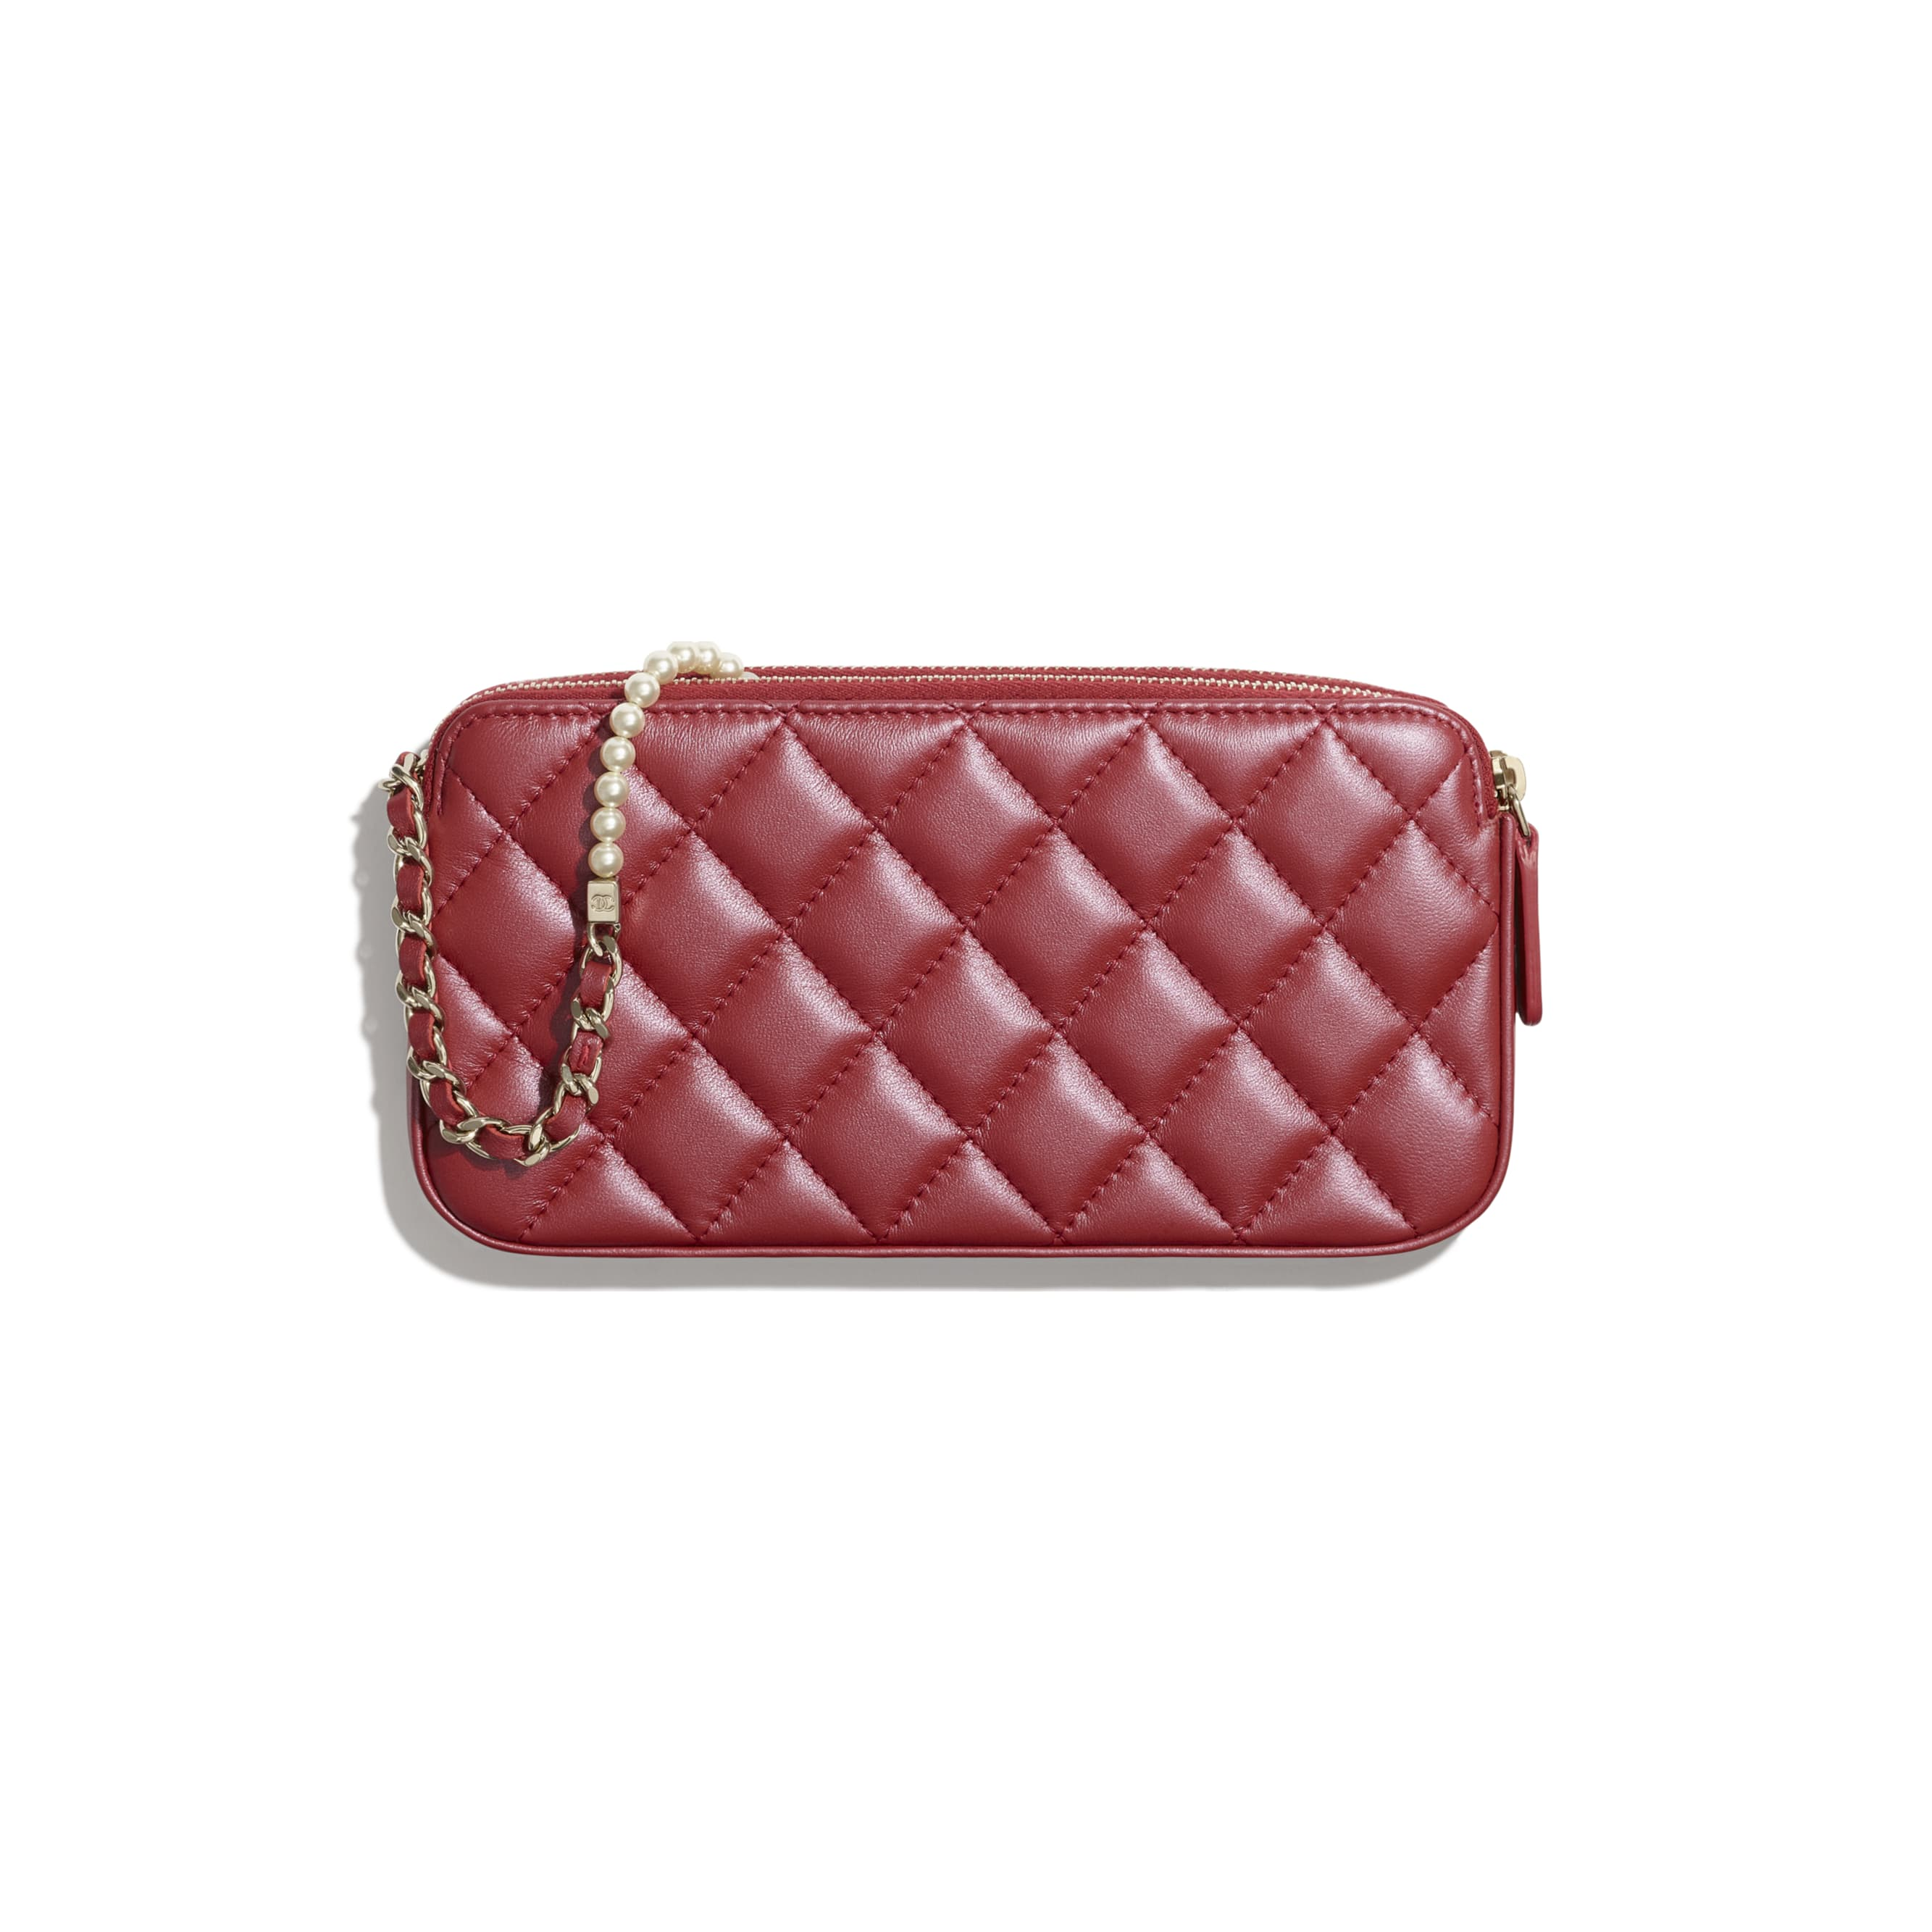 Clutch With Chain - Red - Iridescent lambskin & gold-tone metal - CHANEL - Alternative view - see standard sized version